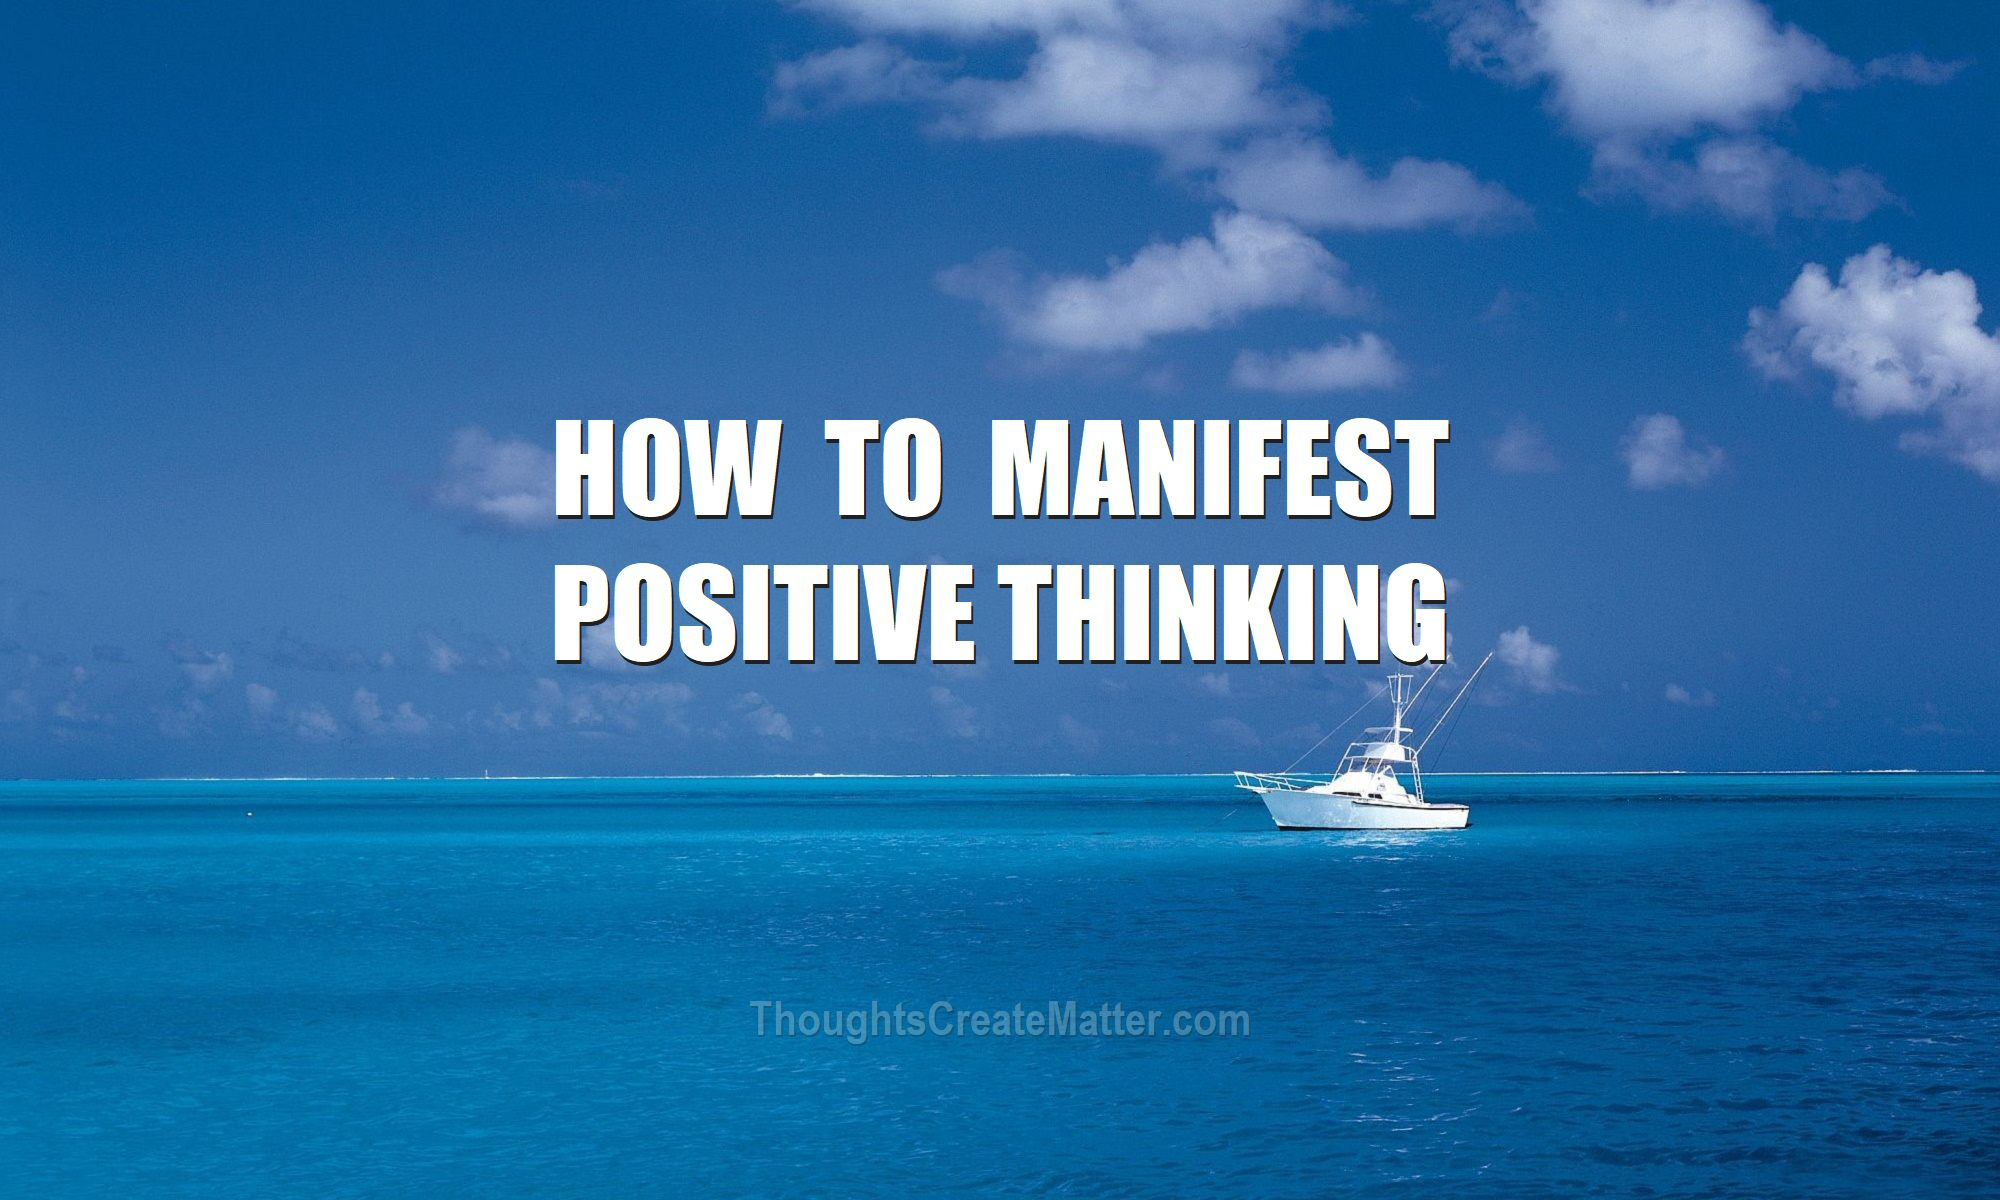 Yacht depicts how-to-materialize-positive-focus-thinking-do-thoughts-emotions-manifest-physically